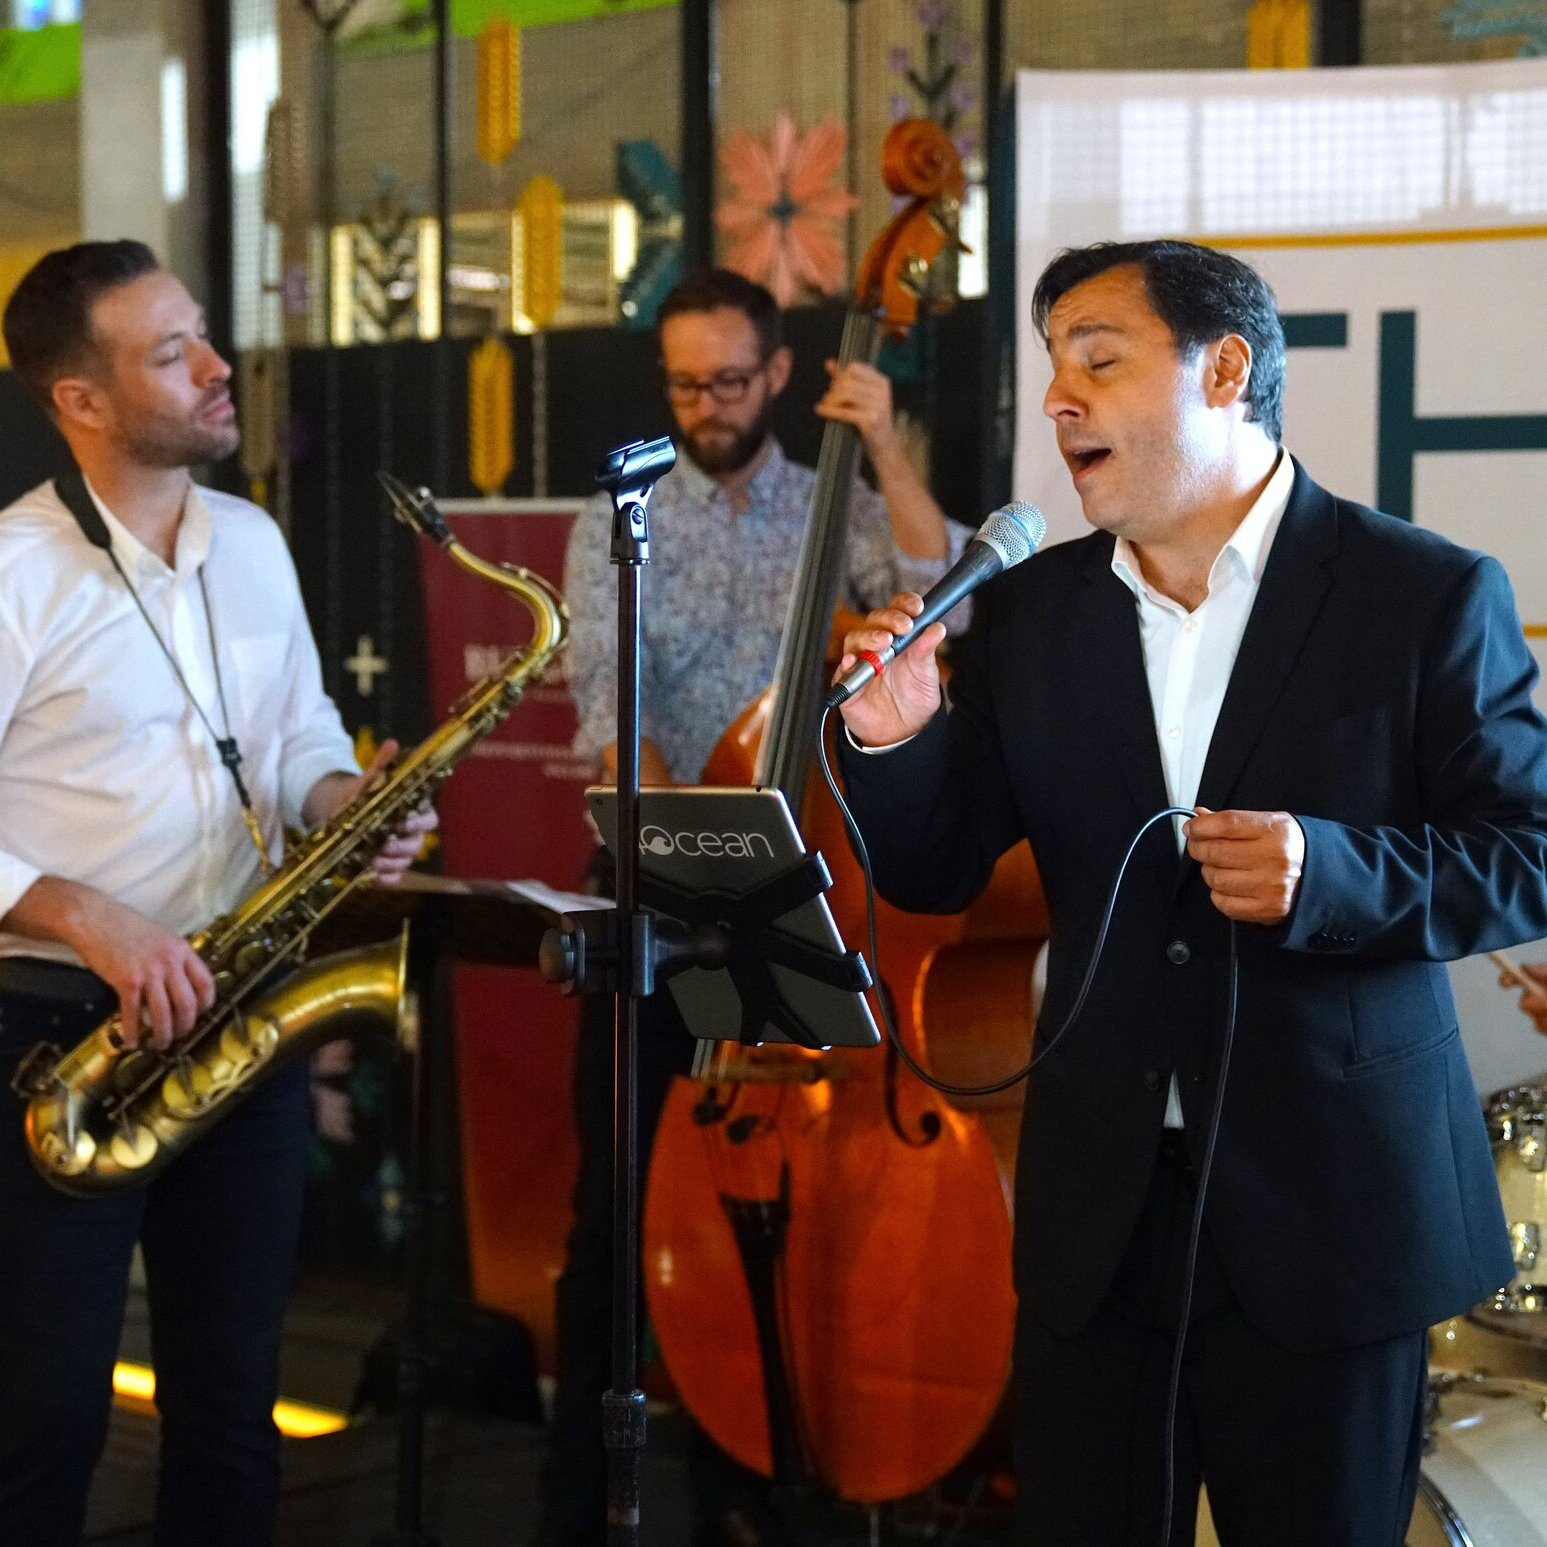 Entertainment - No matter what kind of event you're putting on, you want it to be entertaining and impactful. We work with some of the best in the business and can provide a wide variety of world-class entertainment.Options include:Jazz/Pop bandsBurlesque dancersHypnotistsMentalists/IllusionistsStandup comedians